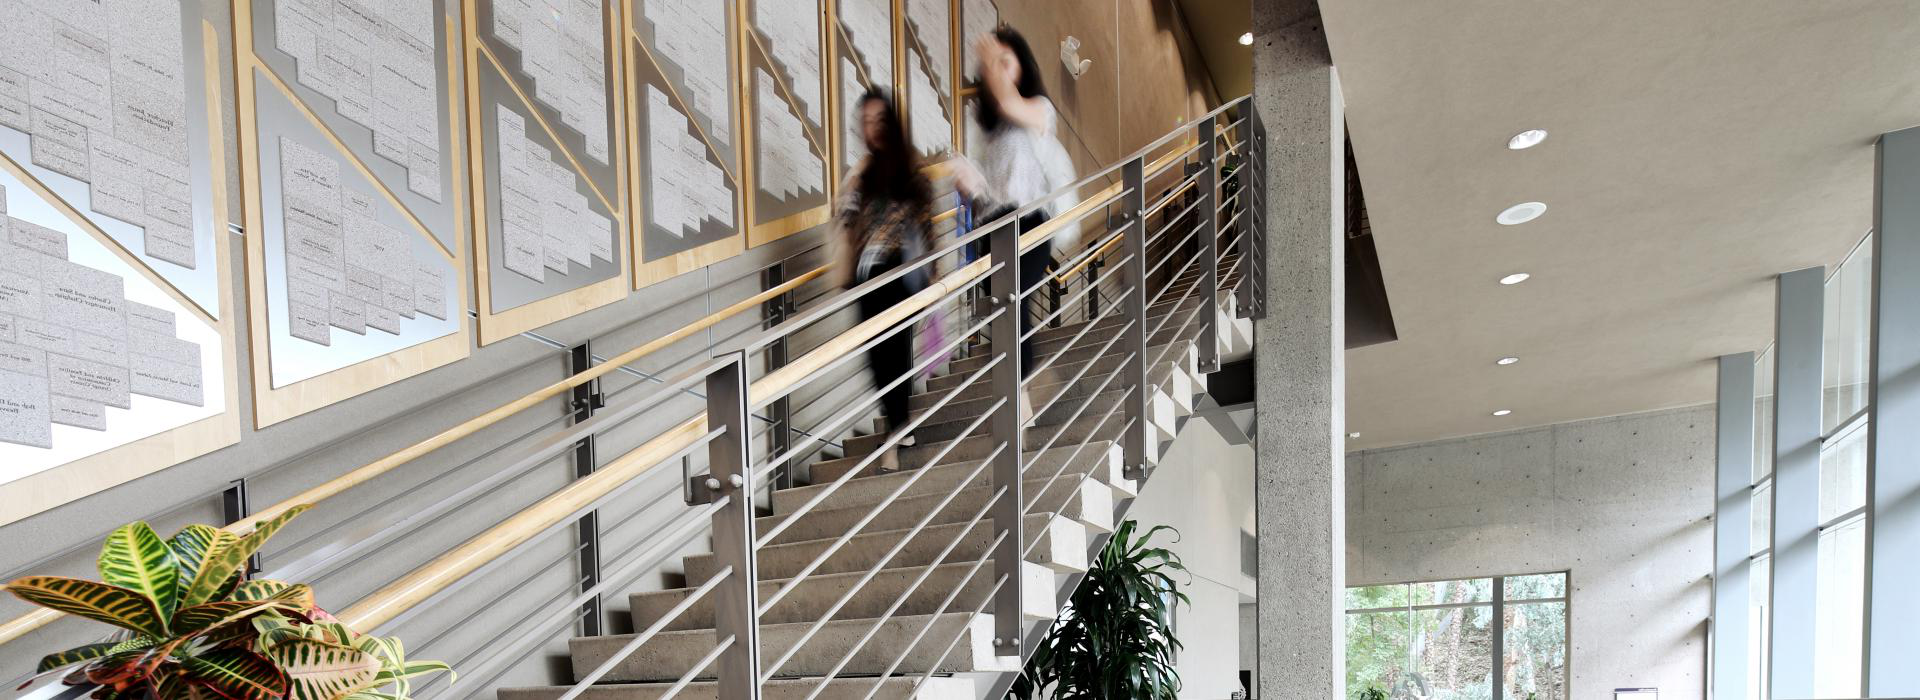 Students walking down library staircase